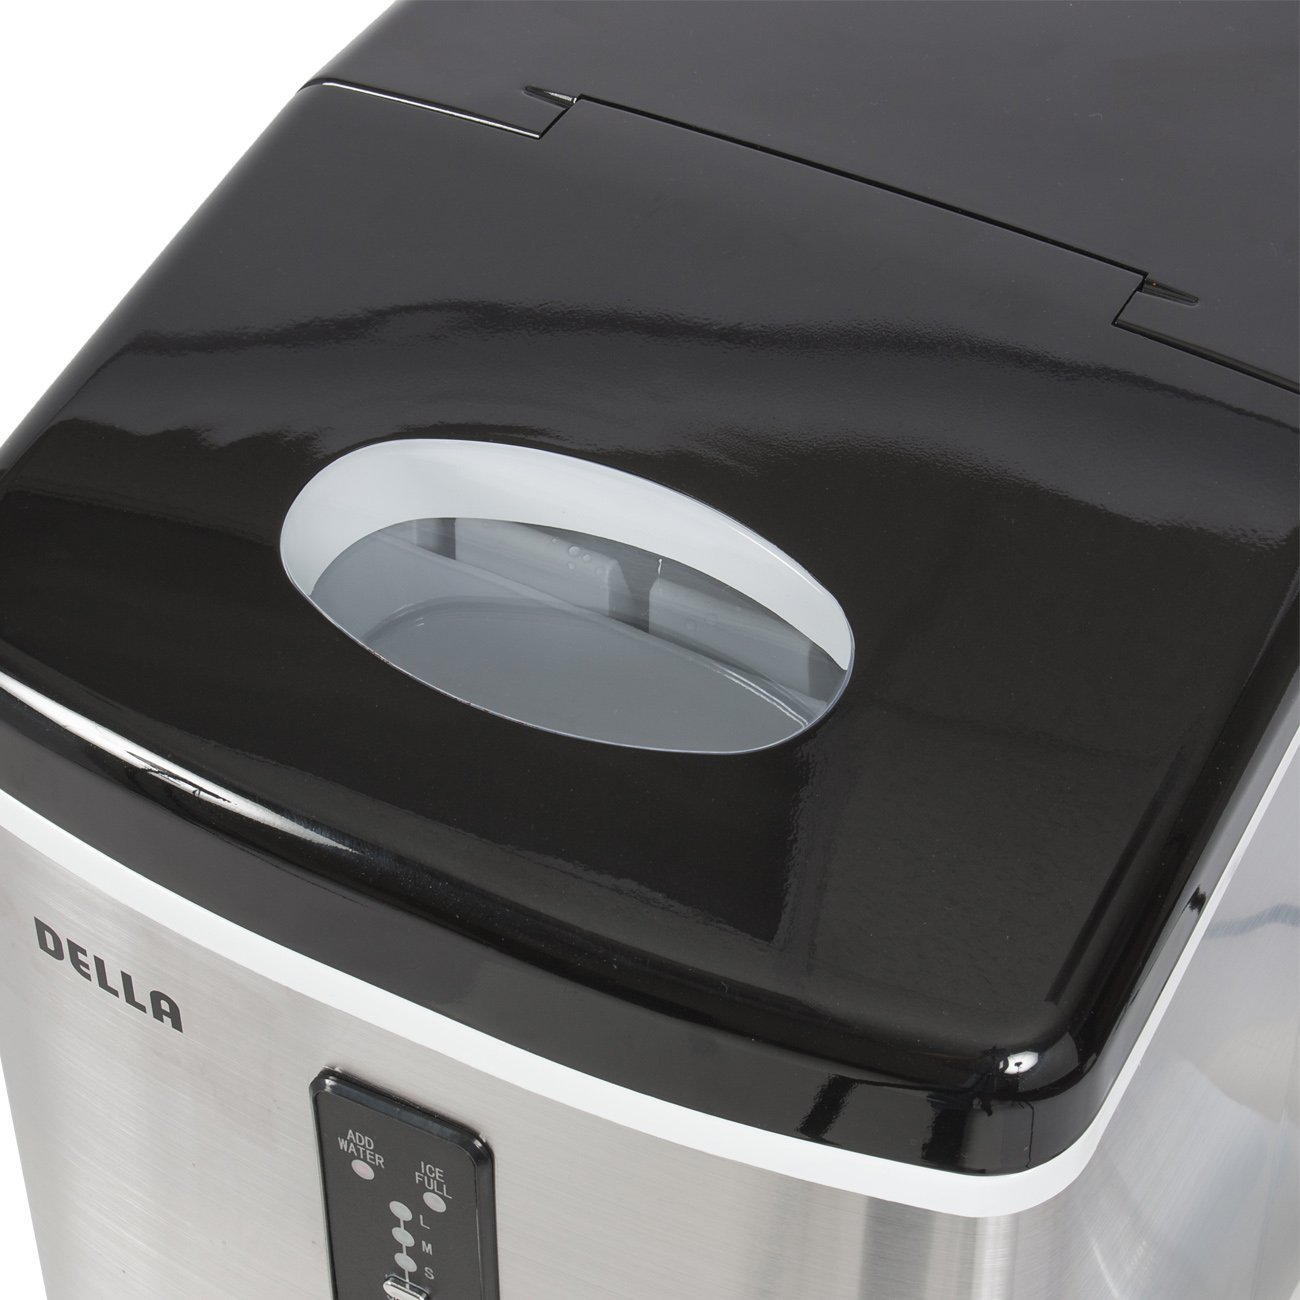 4 Make Your Summer Party Using Della Stainless Steel Ice Maker 35lb Day Portable Countertop Freestanding Icemaker Review Pricelist